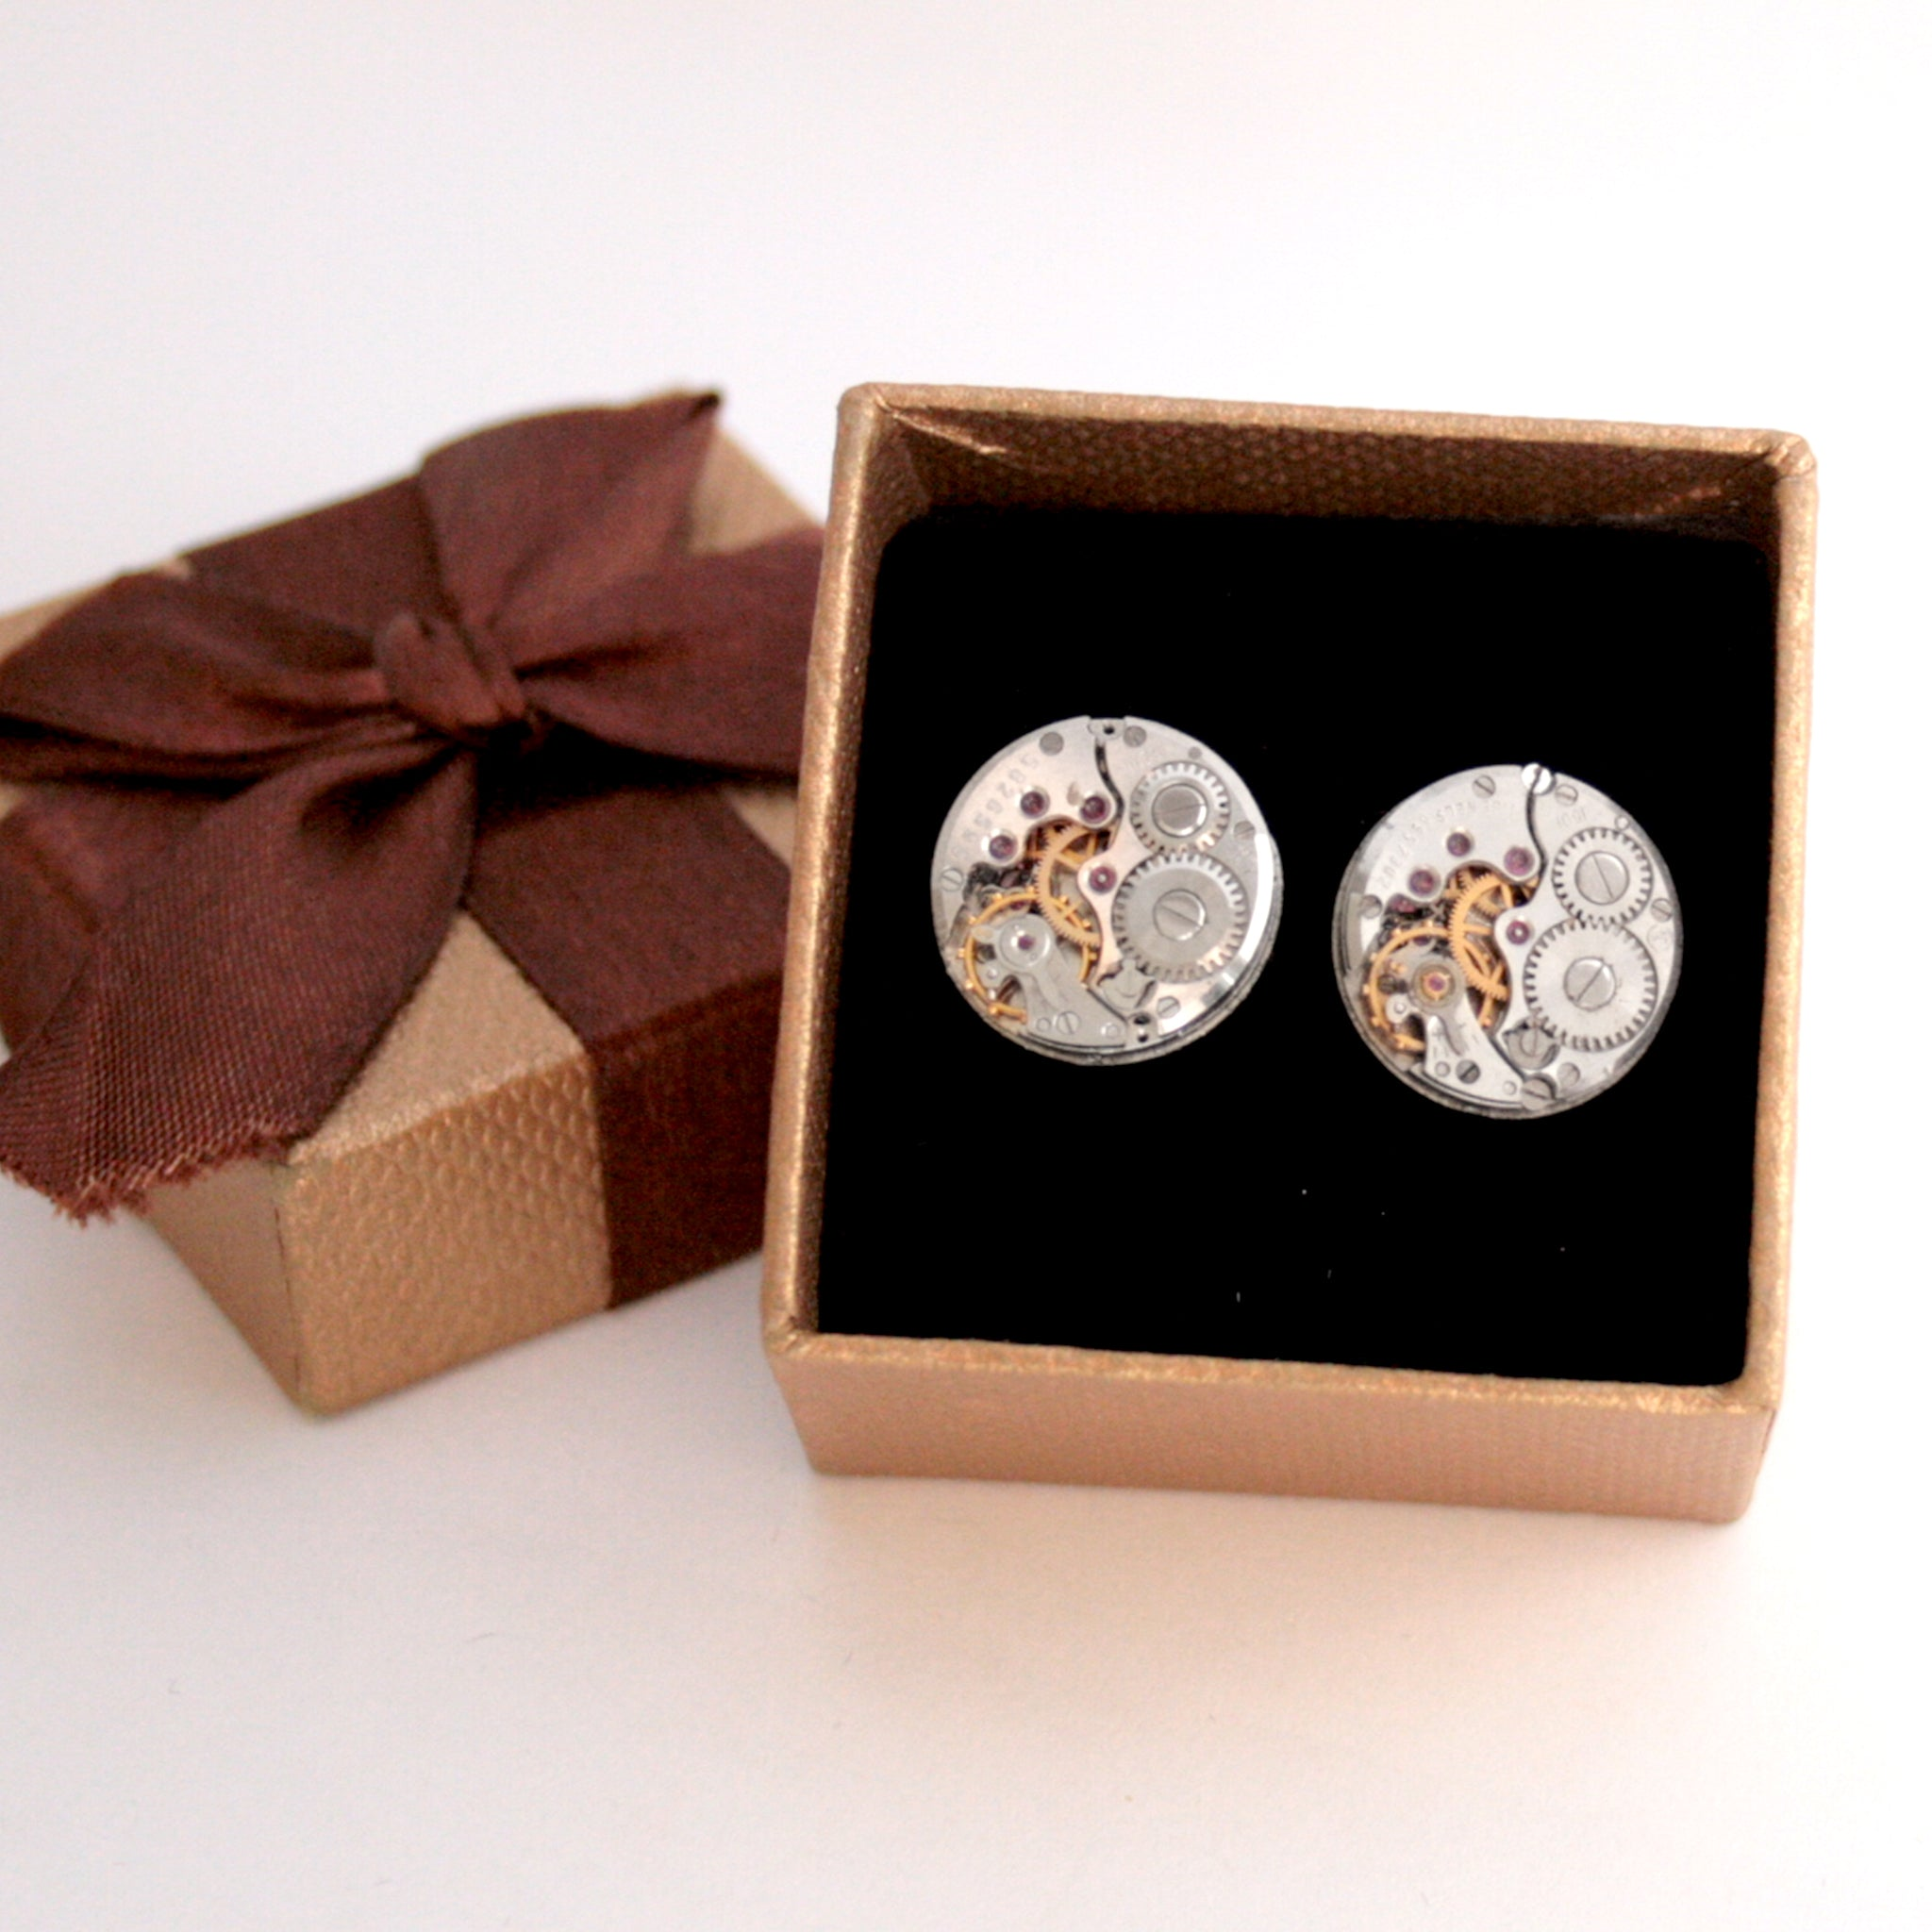 Round watch cufflinks in steampunk style featuring antique watch movements in a brown box